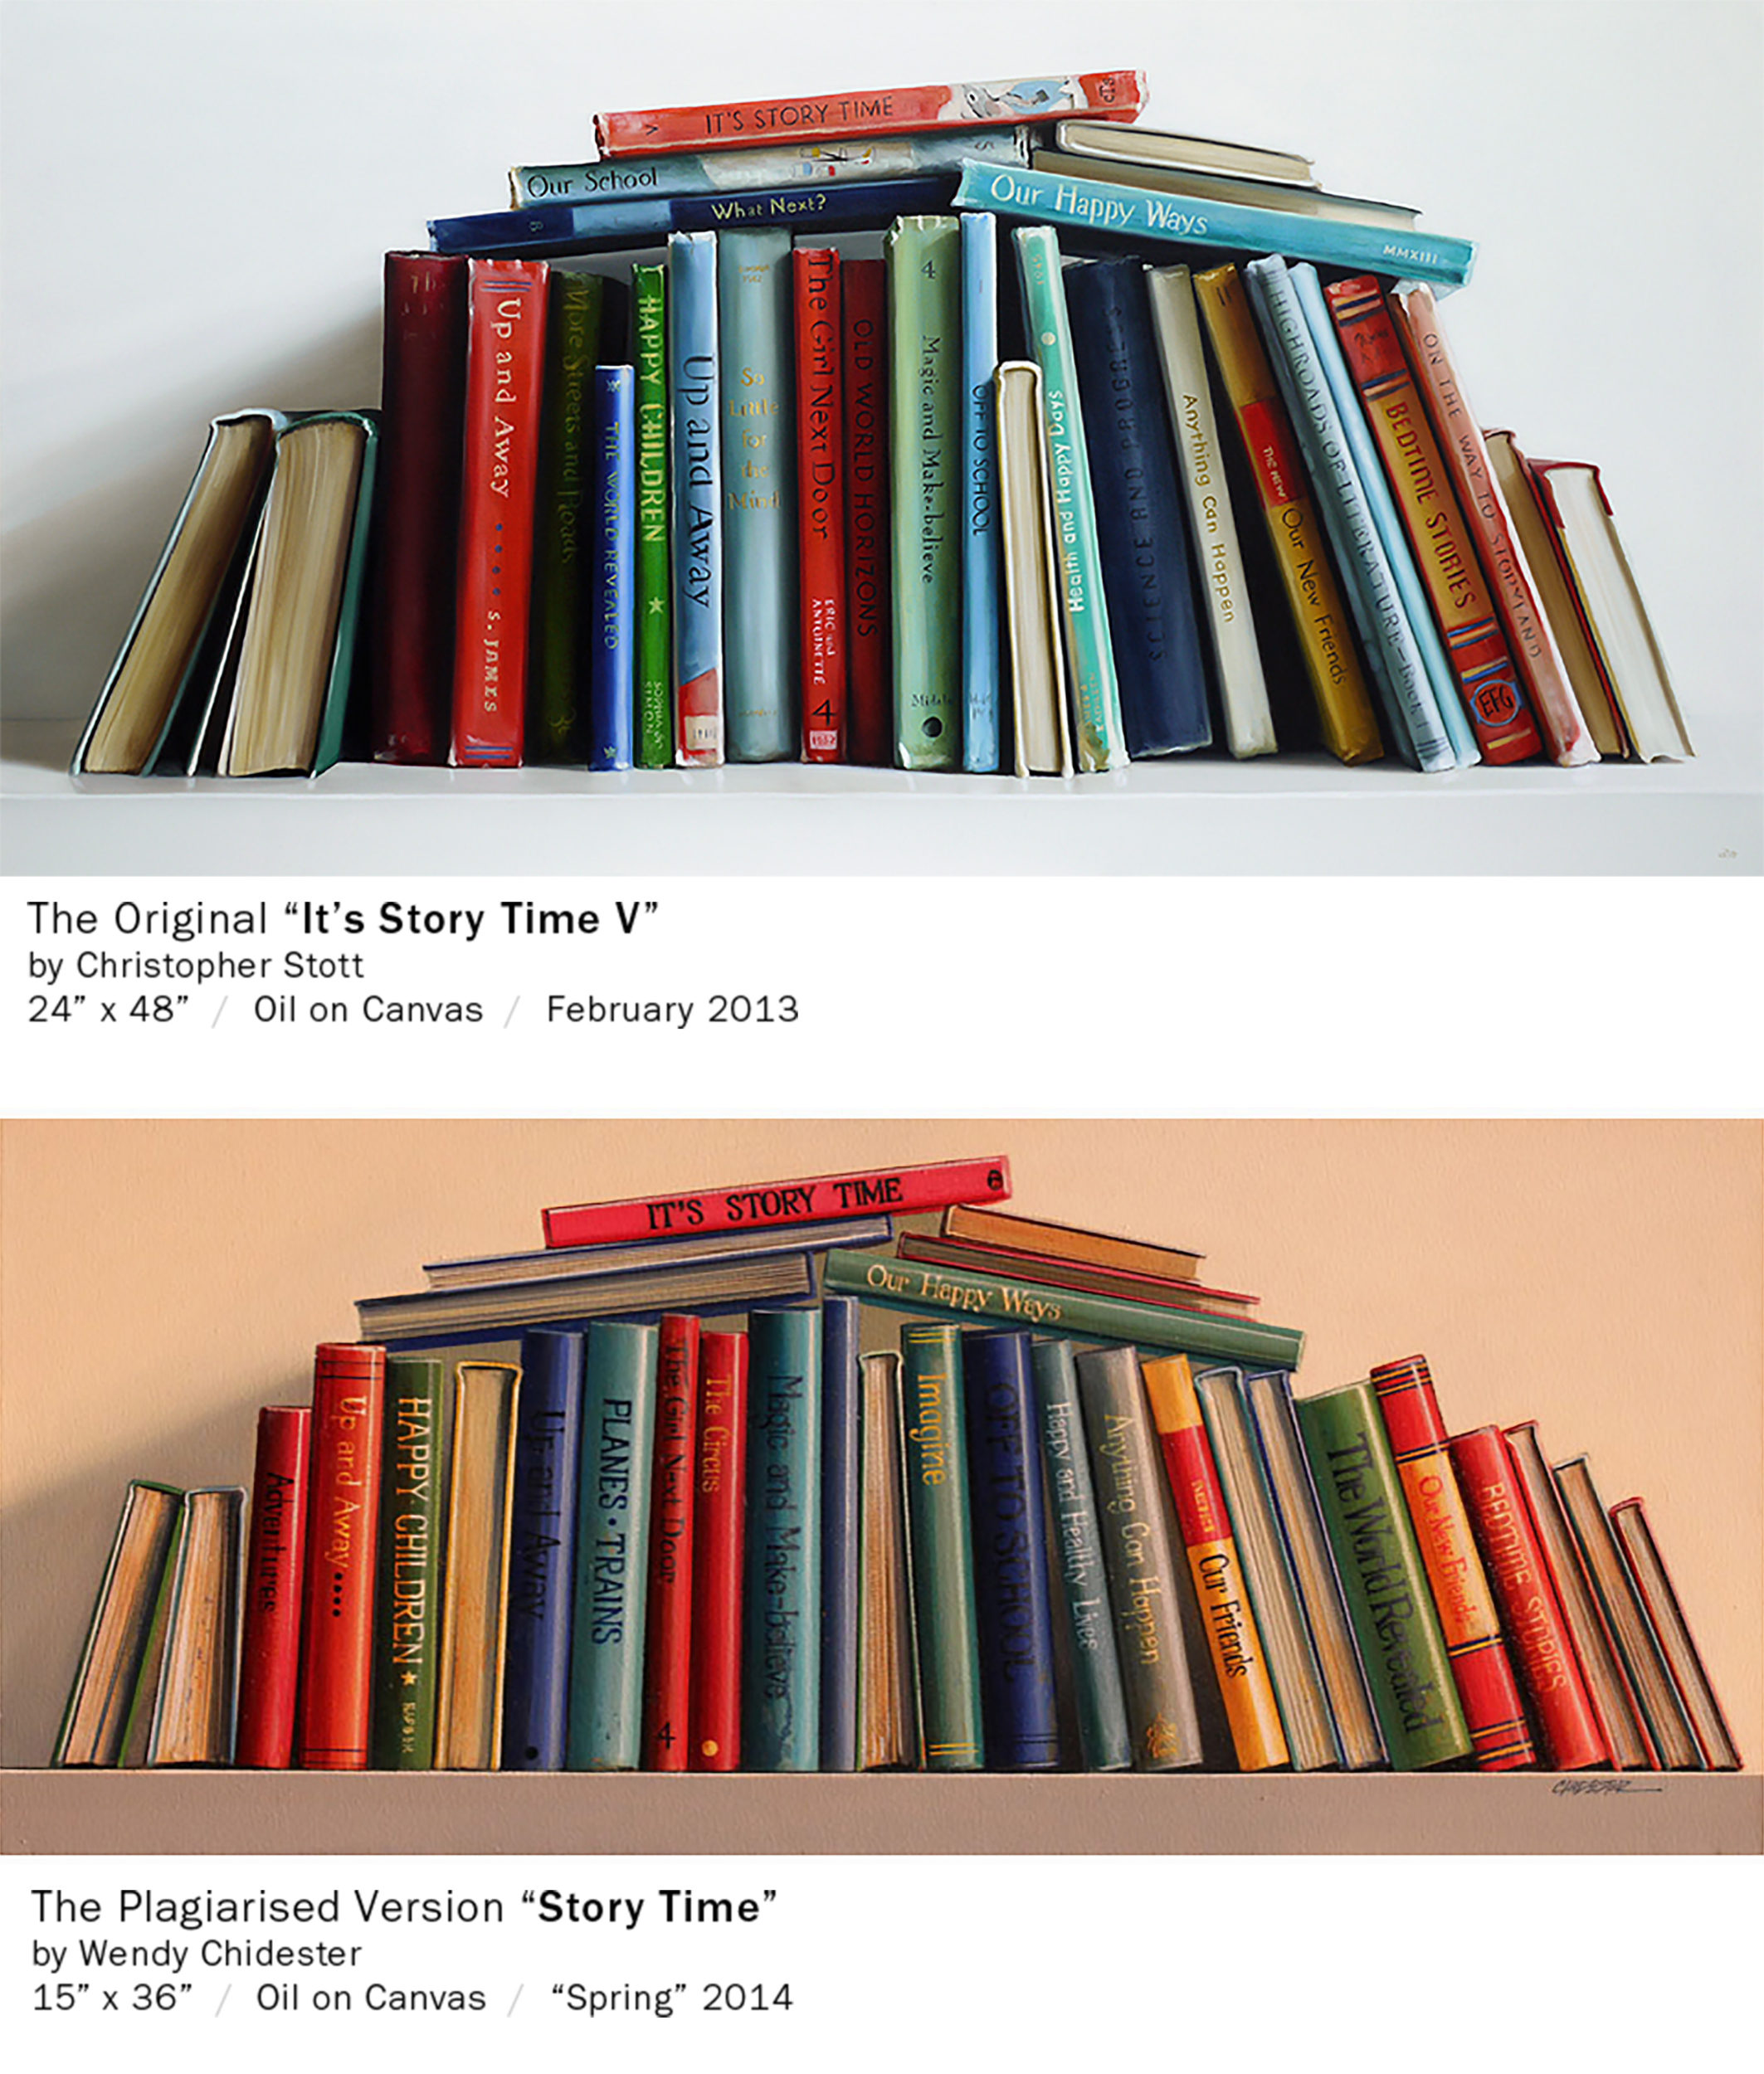 Wendy Chidester Plagiarism of Christopher Stott